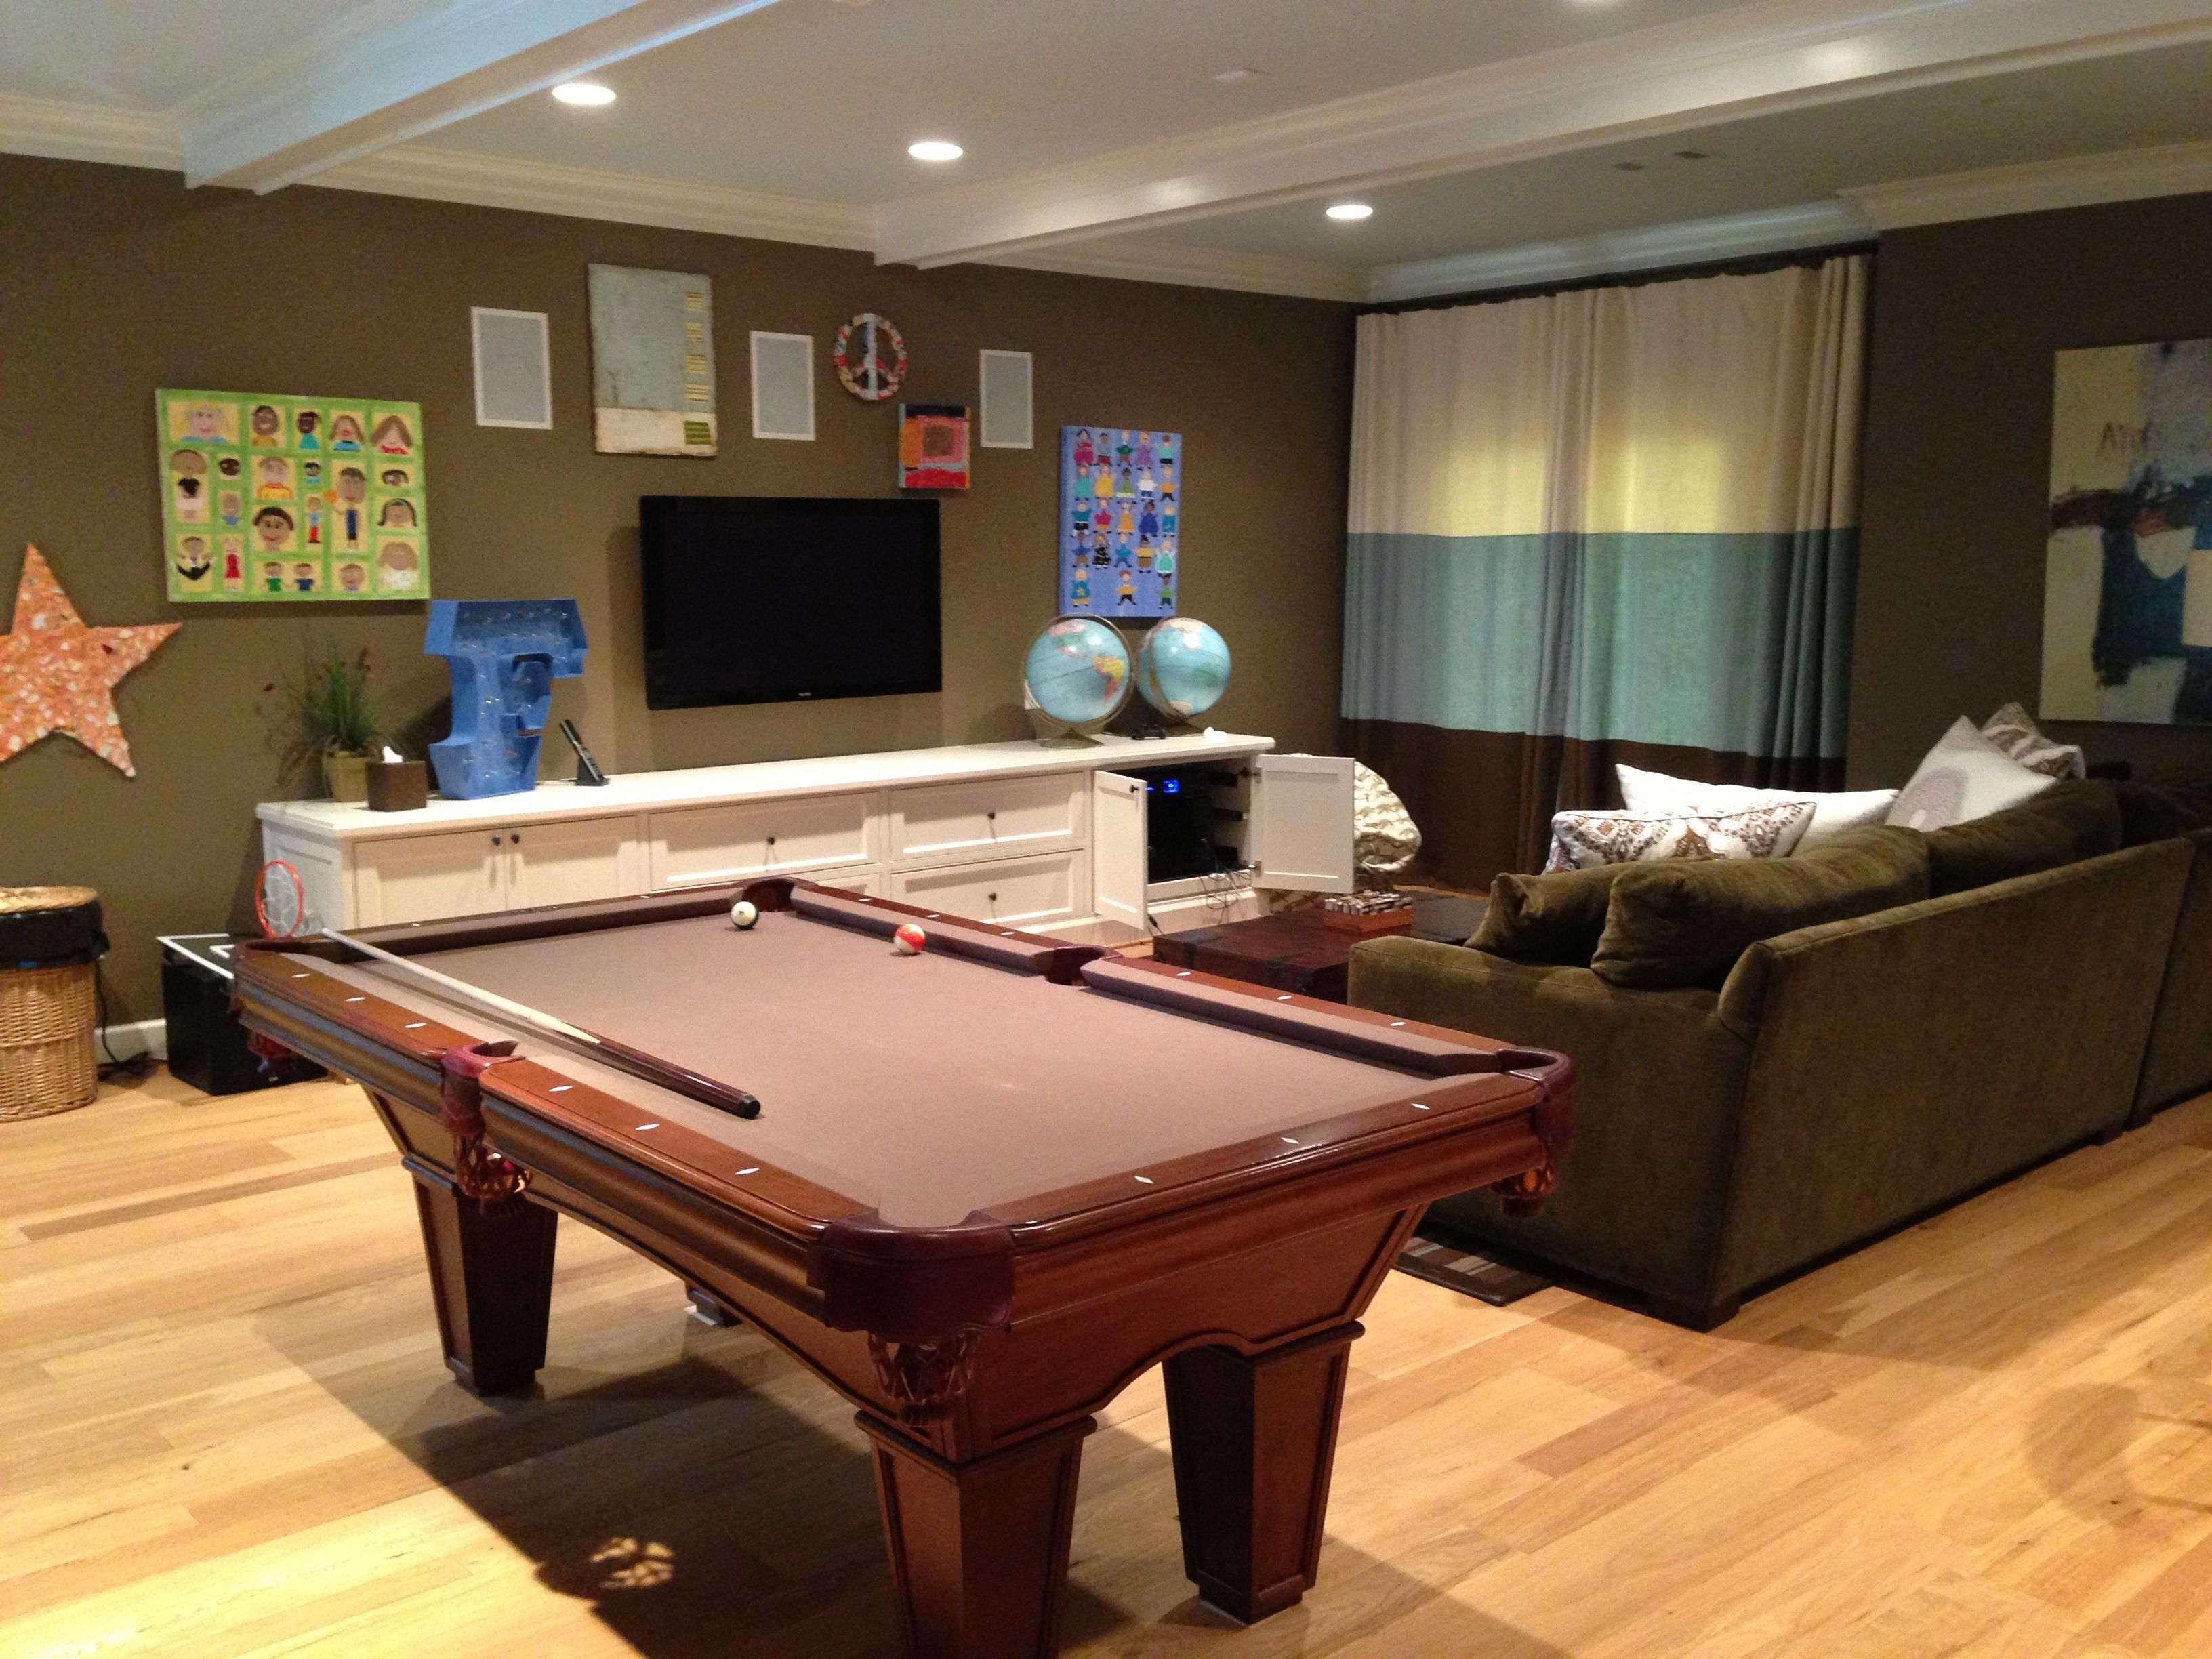 Dream house game room - Find This Pin And More On Best Pool Rooms And Tables Maybe Basement Game Room Dream House